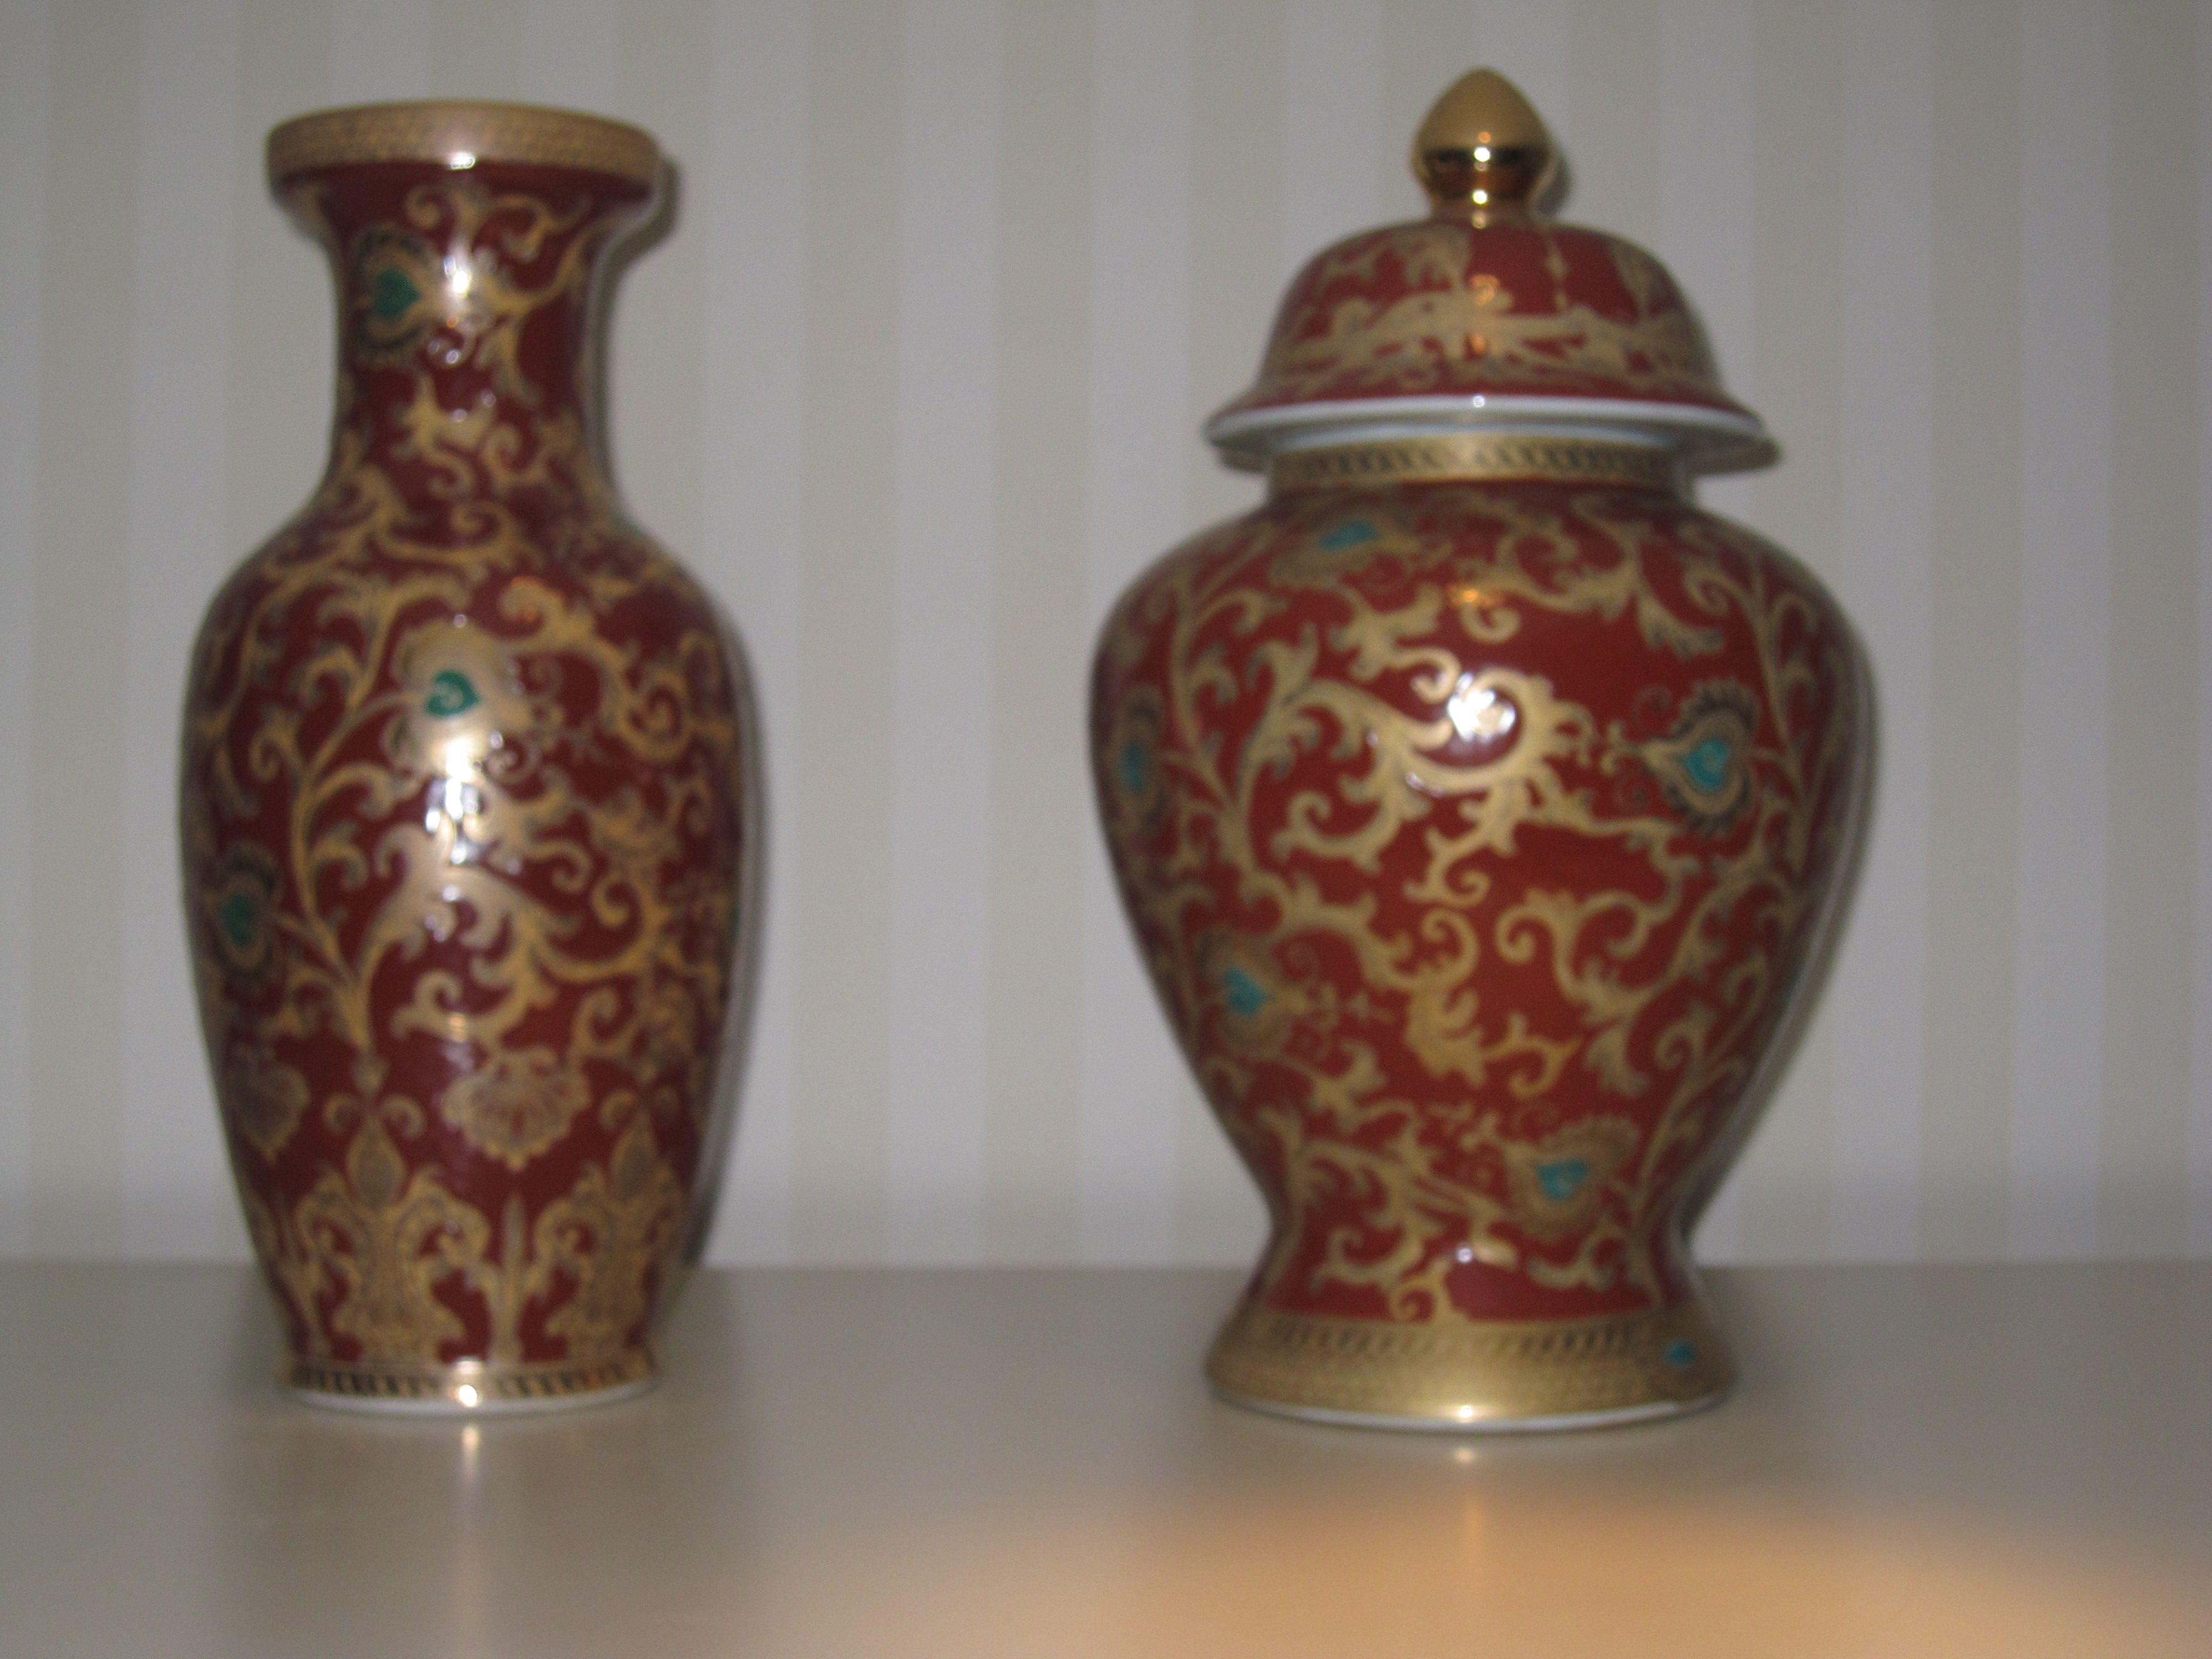 Two urns